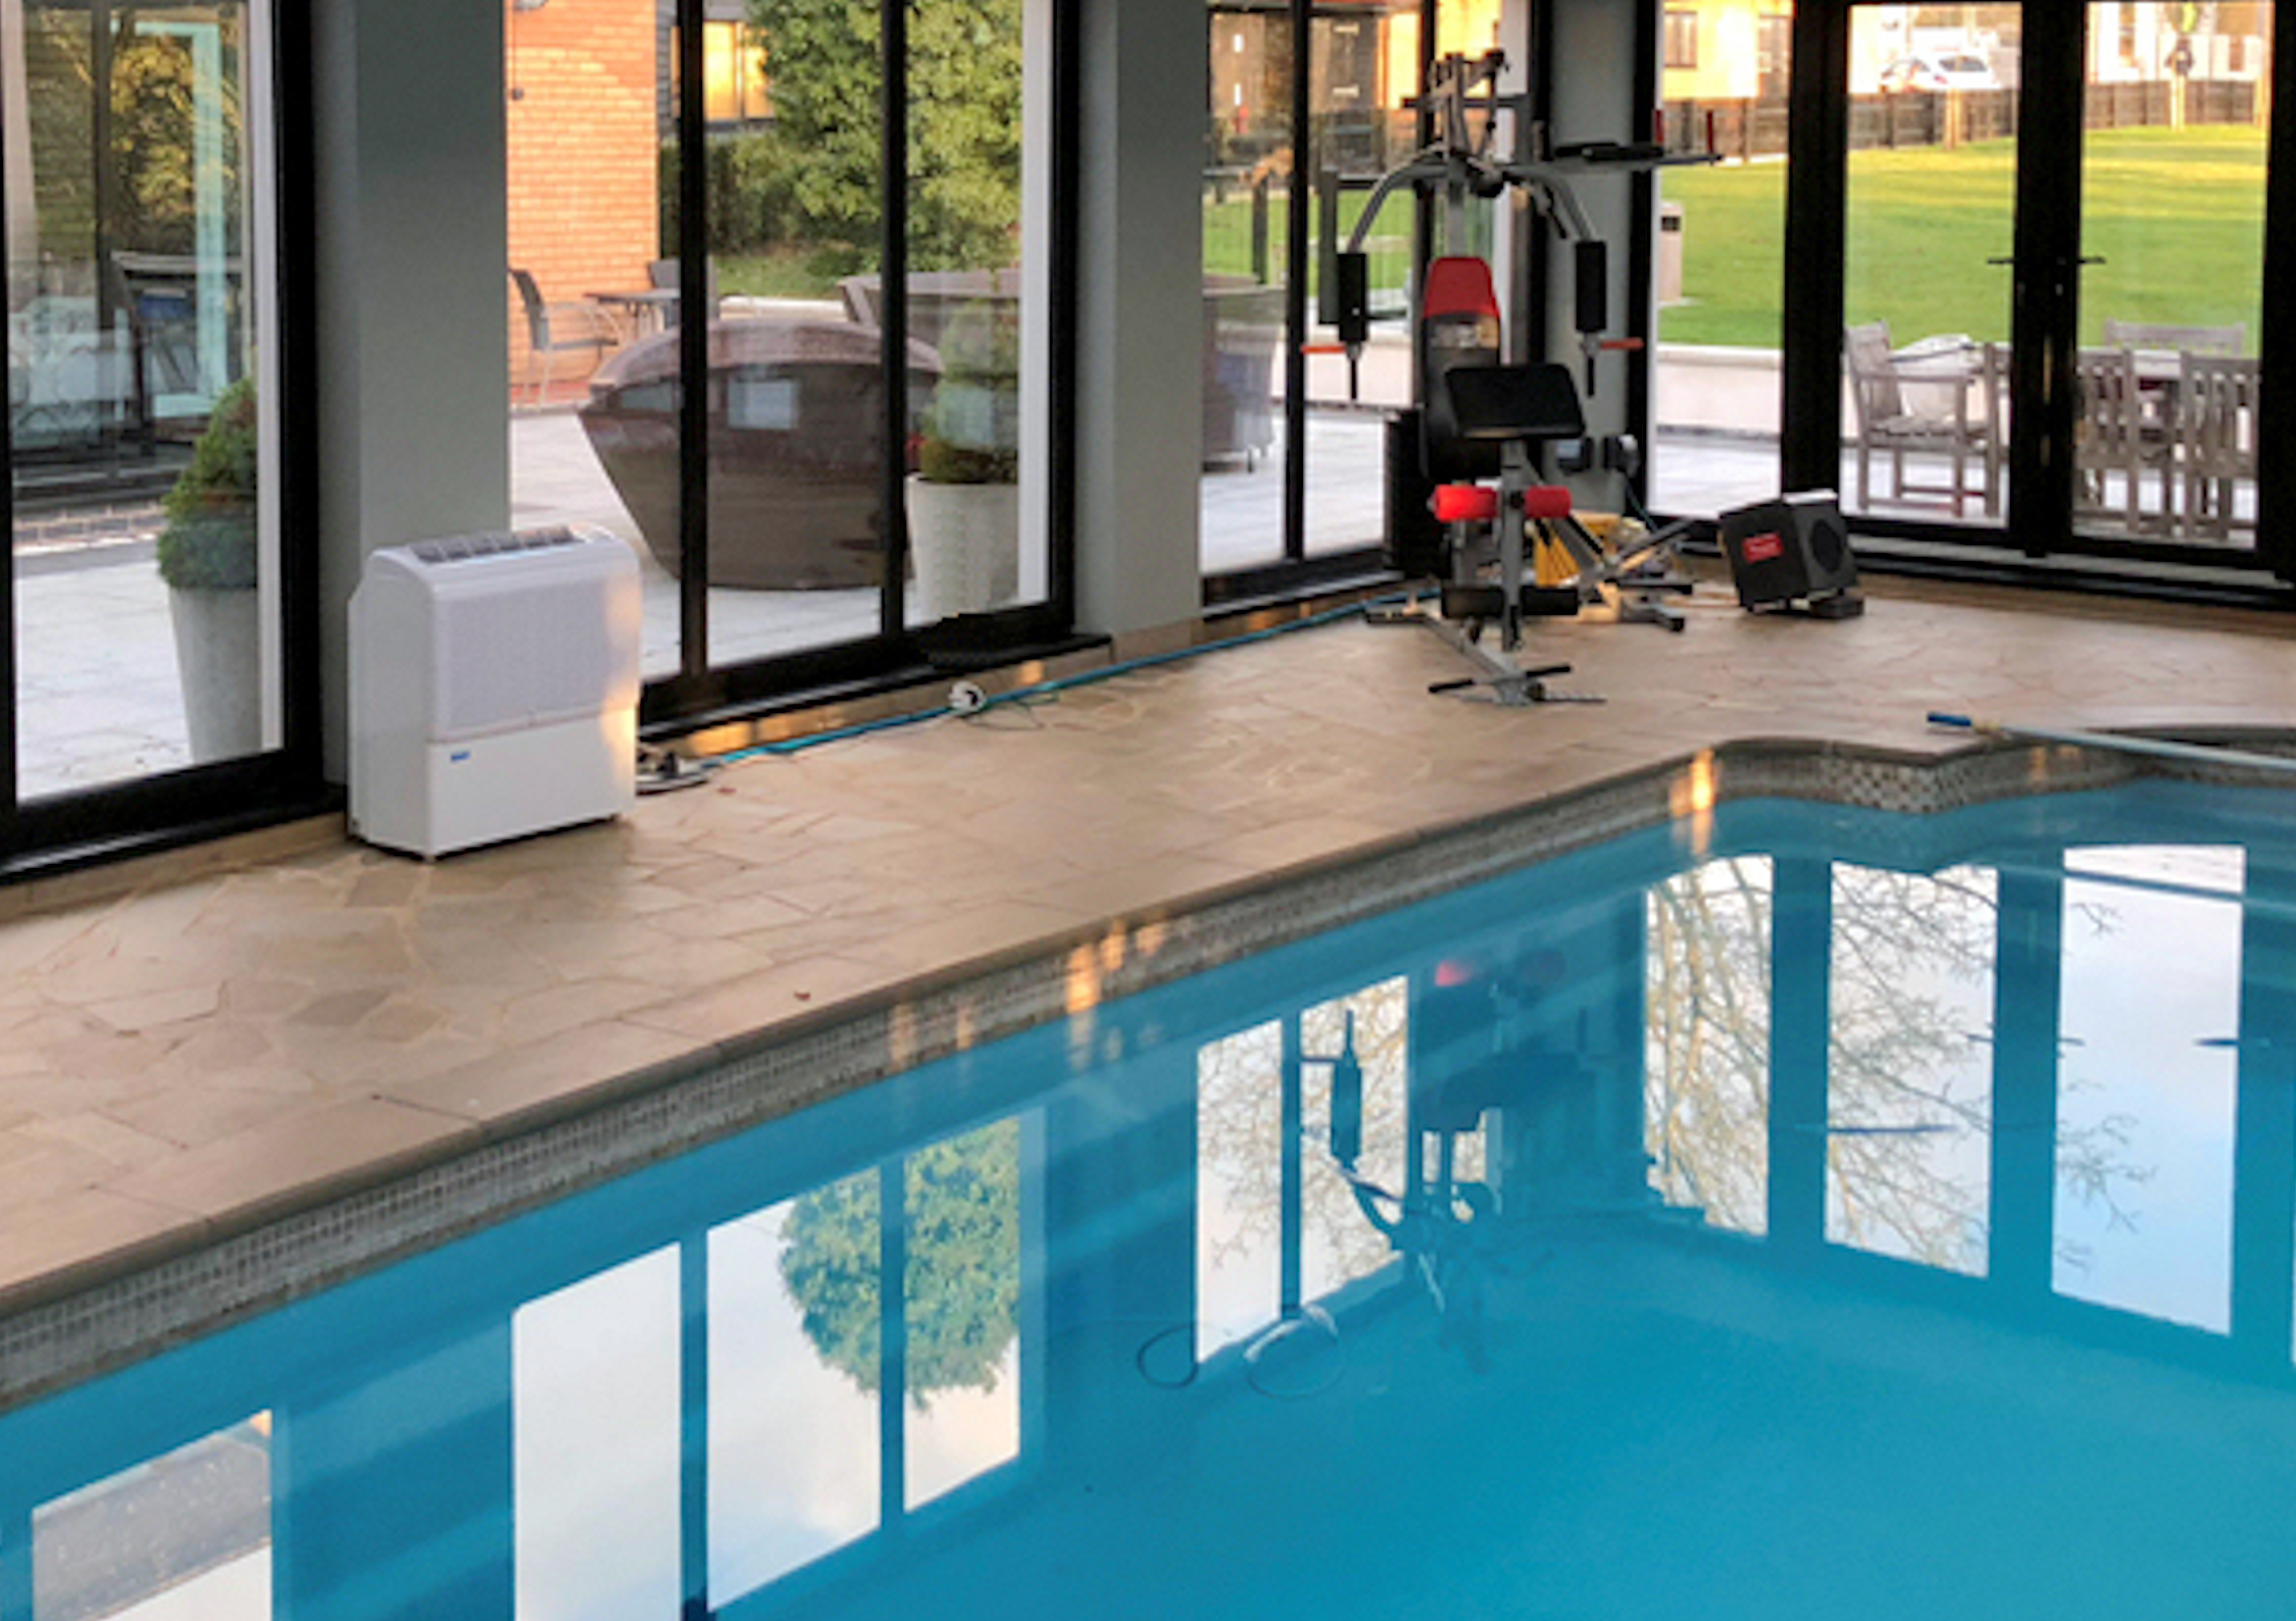 d950 in a swimming pool dehumidifiers by Ecor Pro